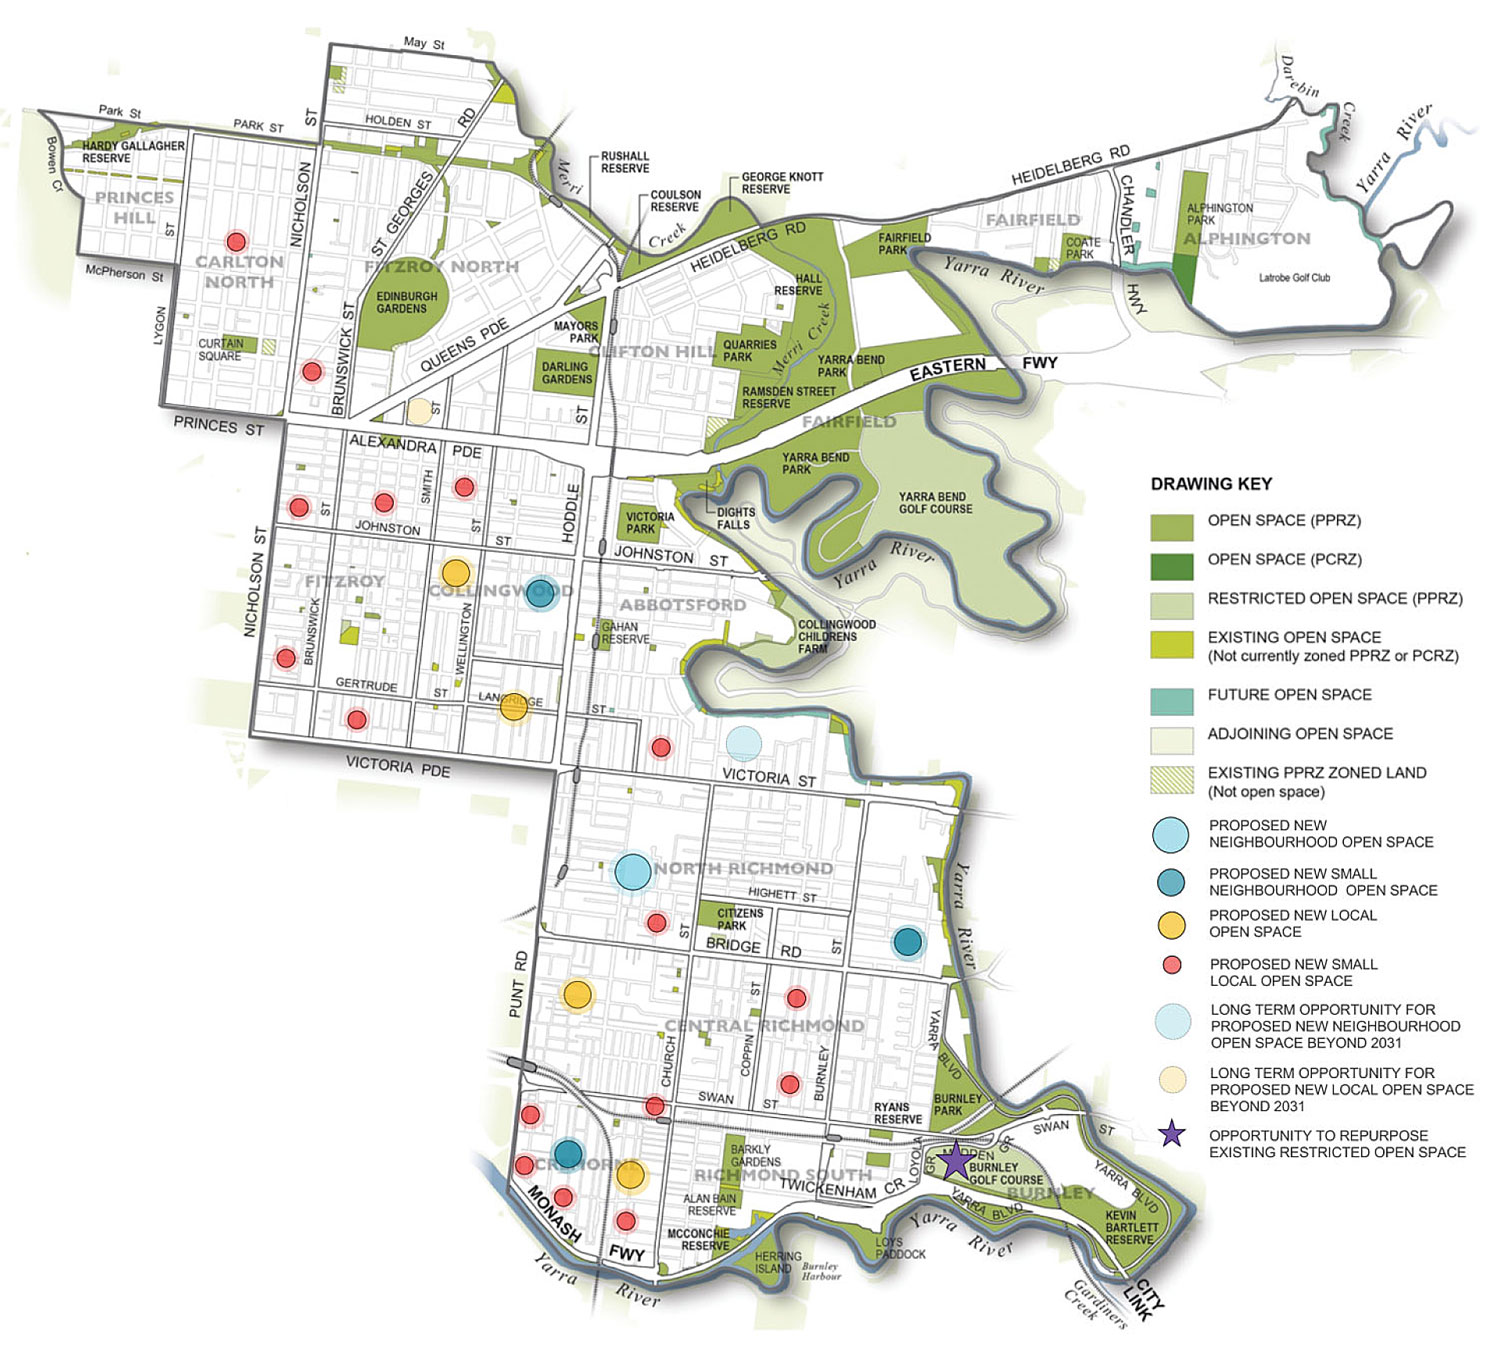 Proposed new open spaces in Yarra